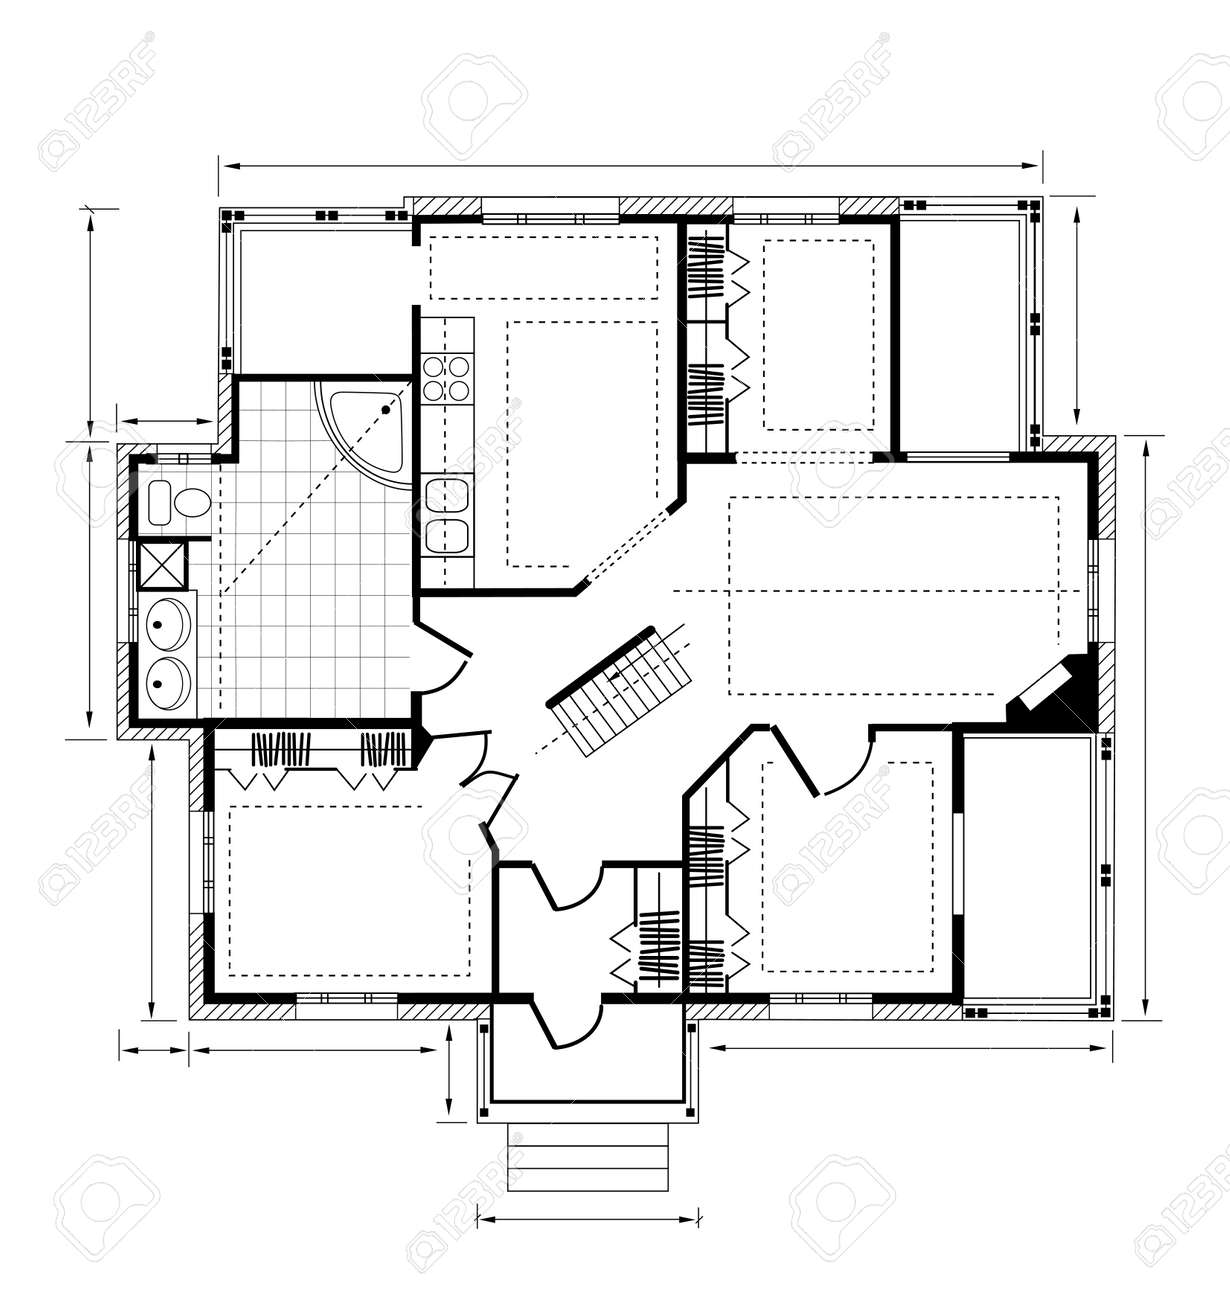 29,182 New House Construction Stock Illustrations, Cliparts And ...